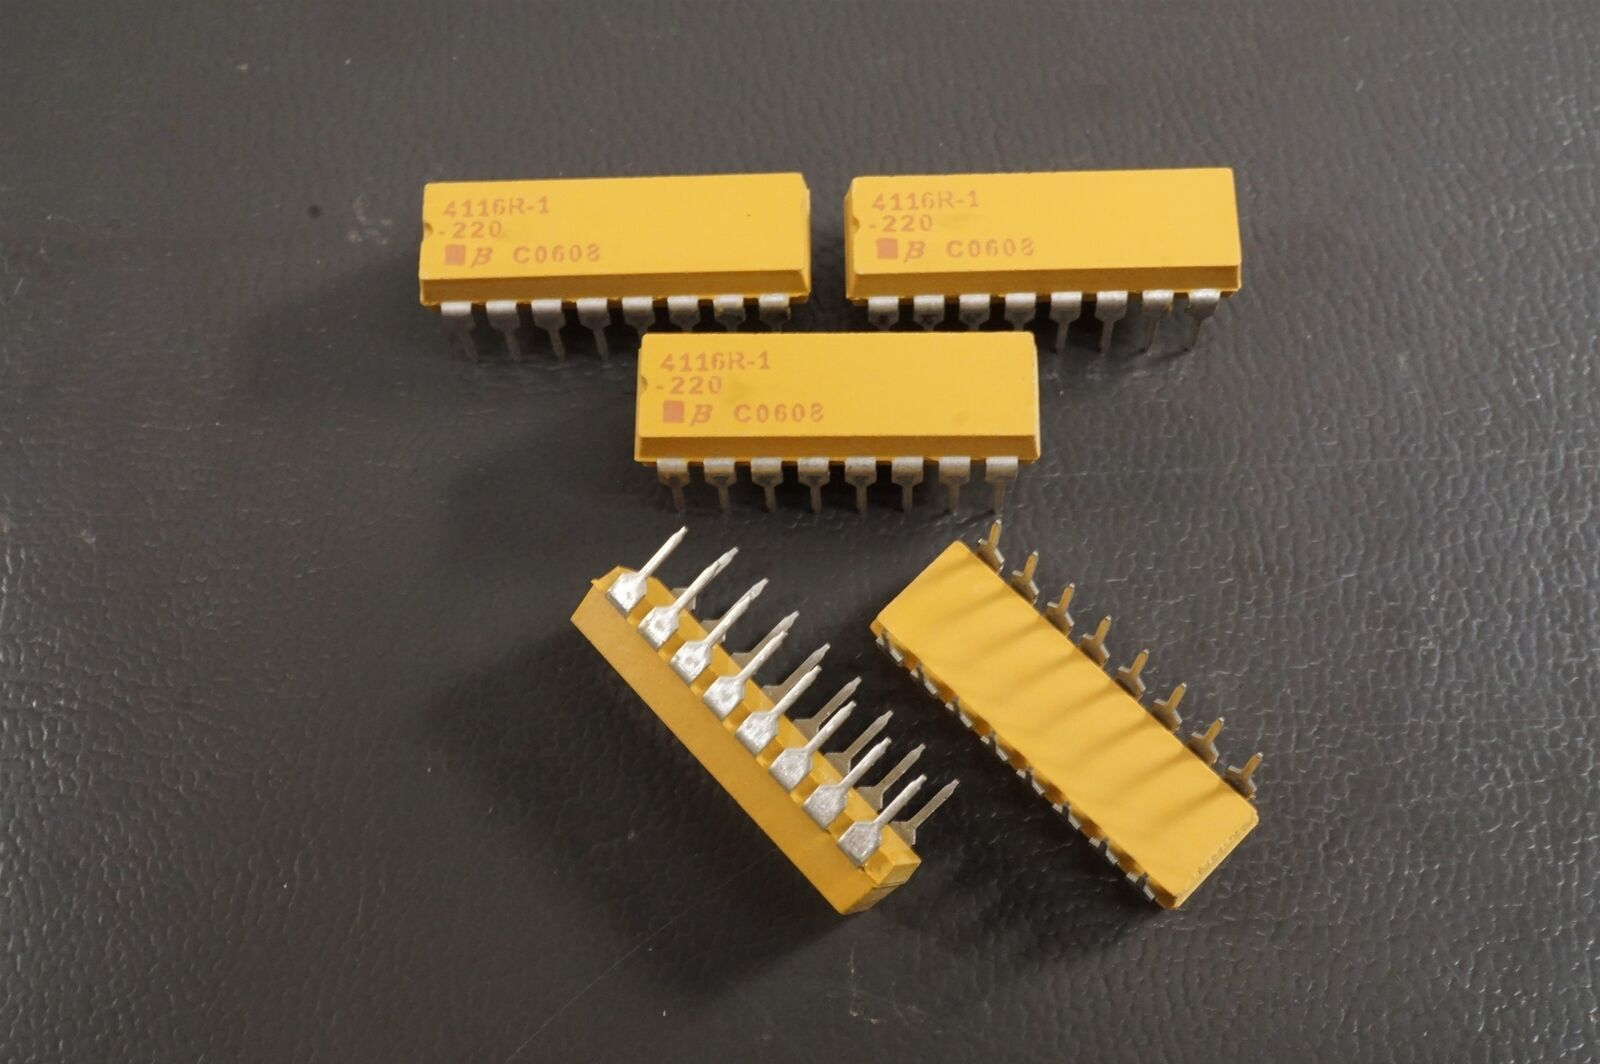 Lot of 7 4116R-1-220 Bourns Thick Film Molded DIP Resistor 22 Ohm 2.25W 2 1//4W